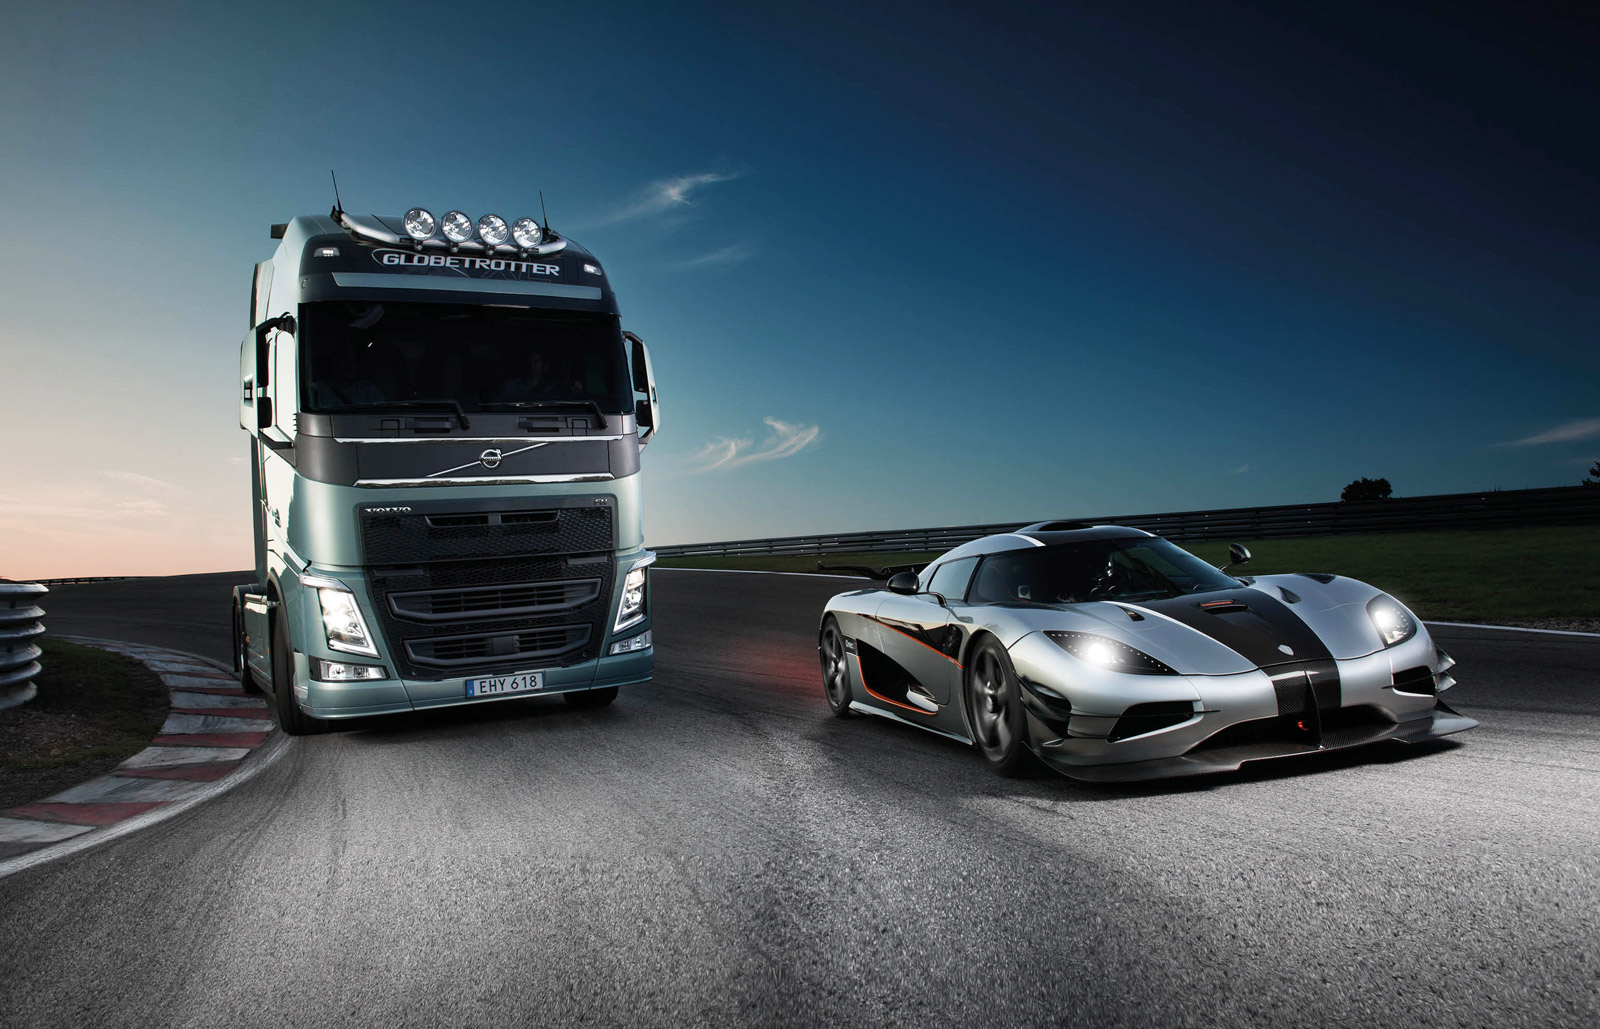 volvo fh and the koenigsegg one1 100489600 h